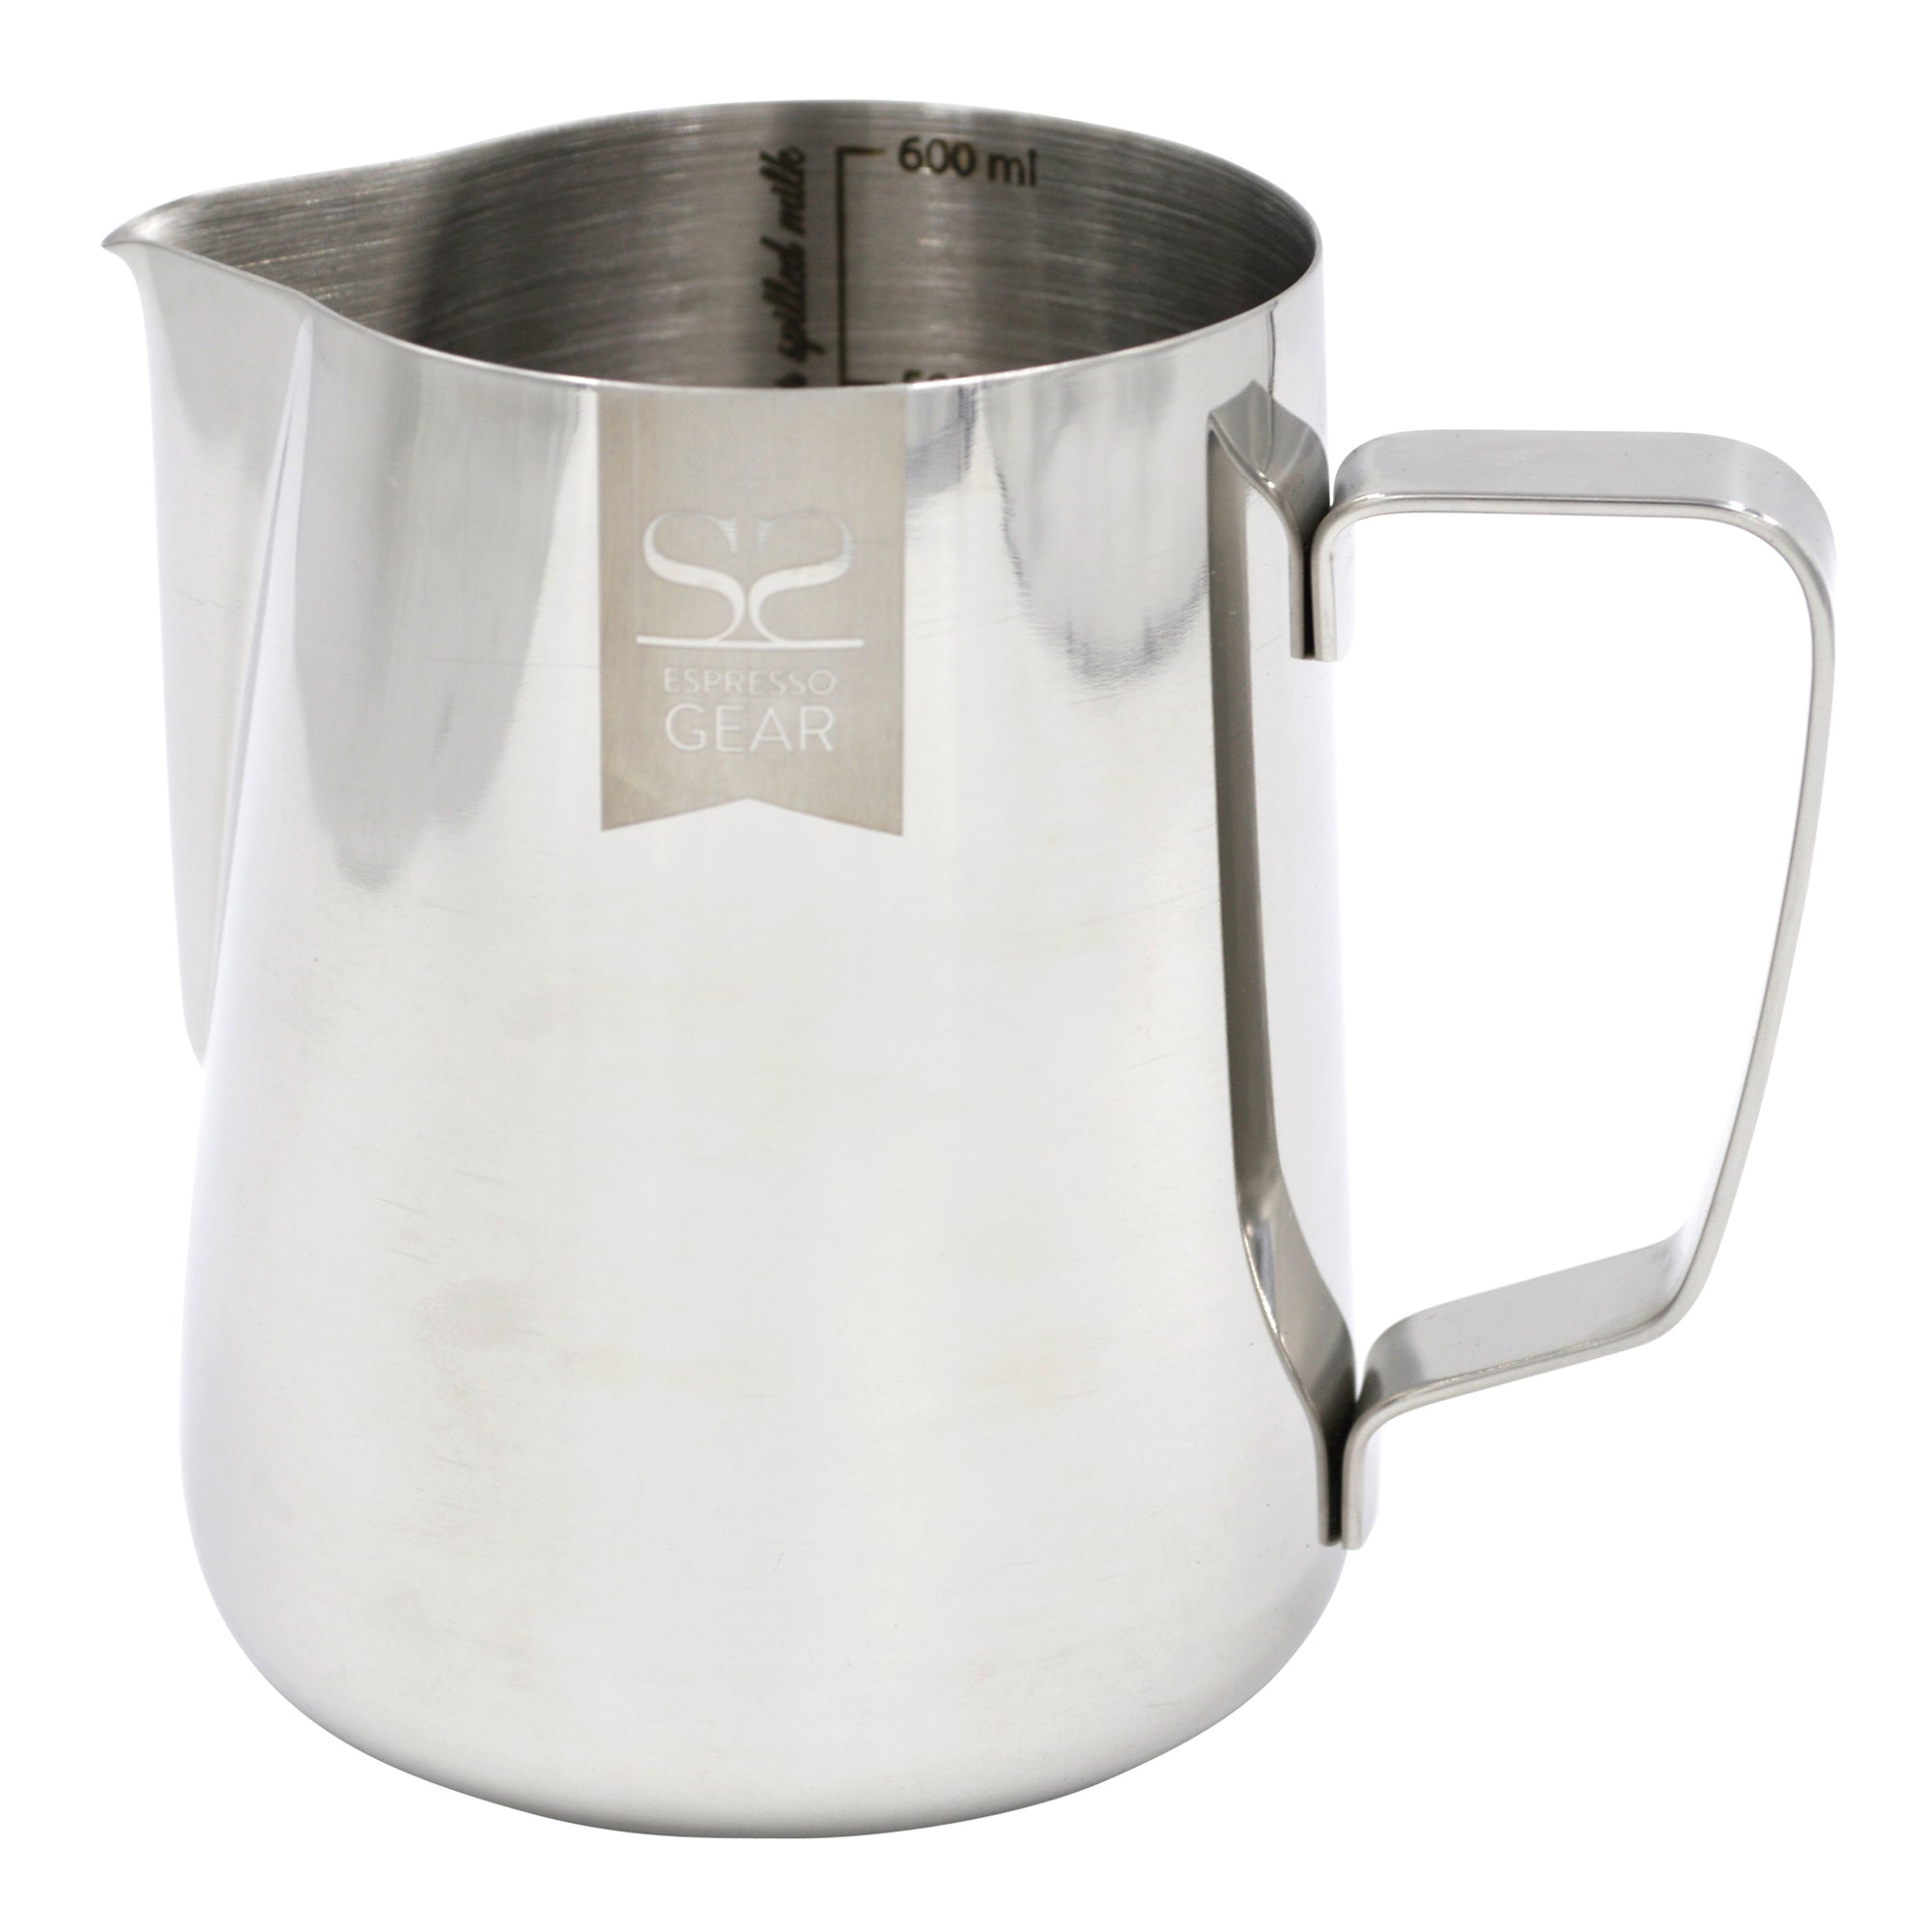 Espresso Gear Stainless Steel Pitcher 400ml - Espresso Gear